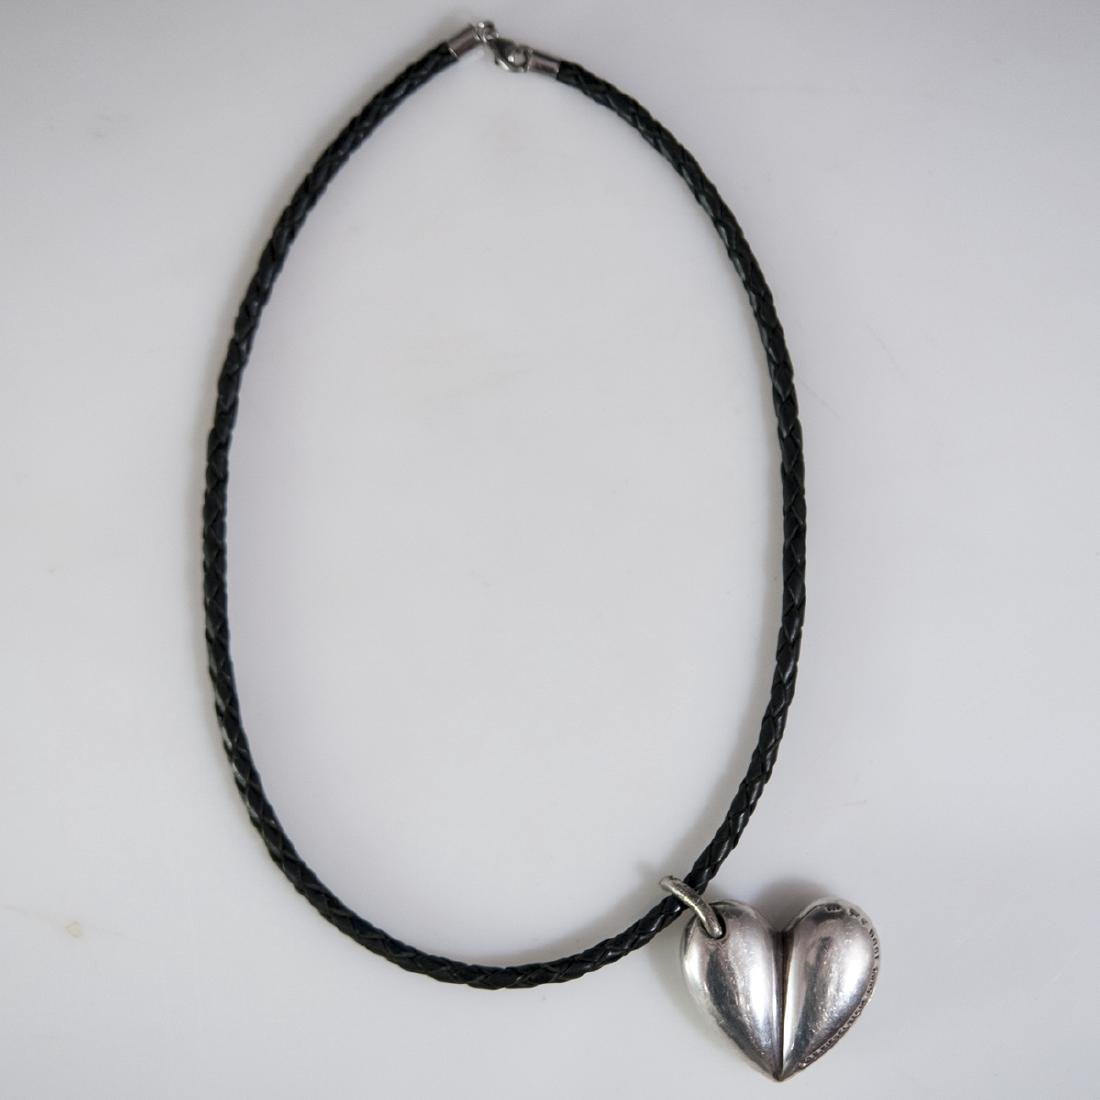 Barry Kieselstein Cord Sterling & Leather Necklace - 4